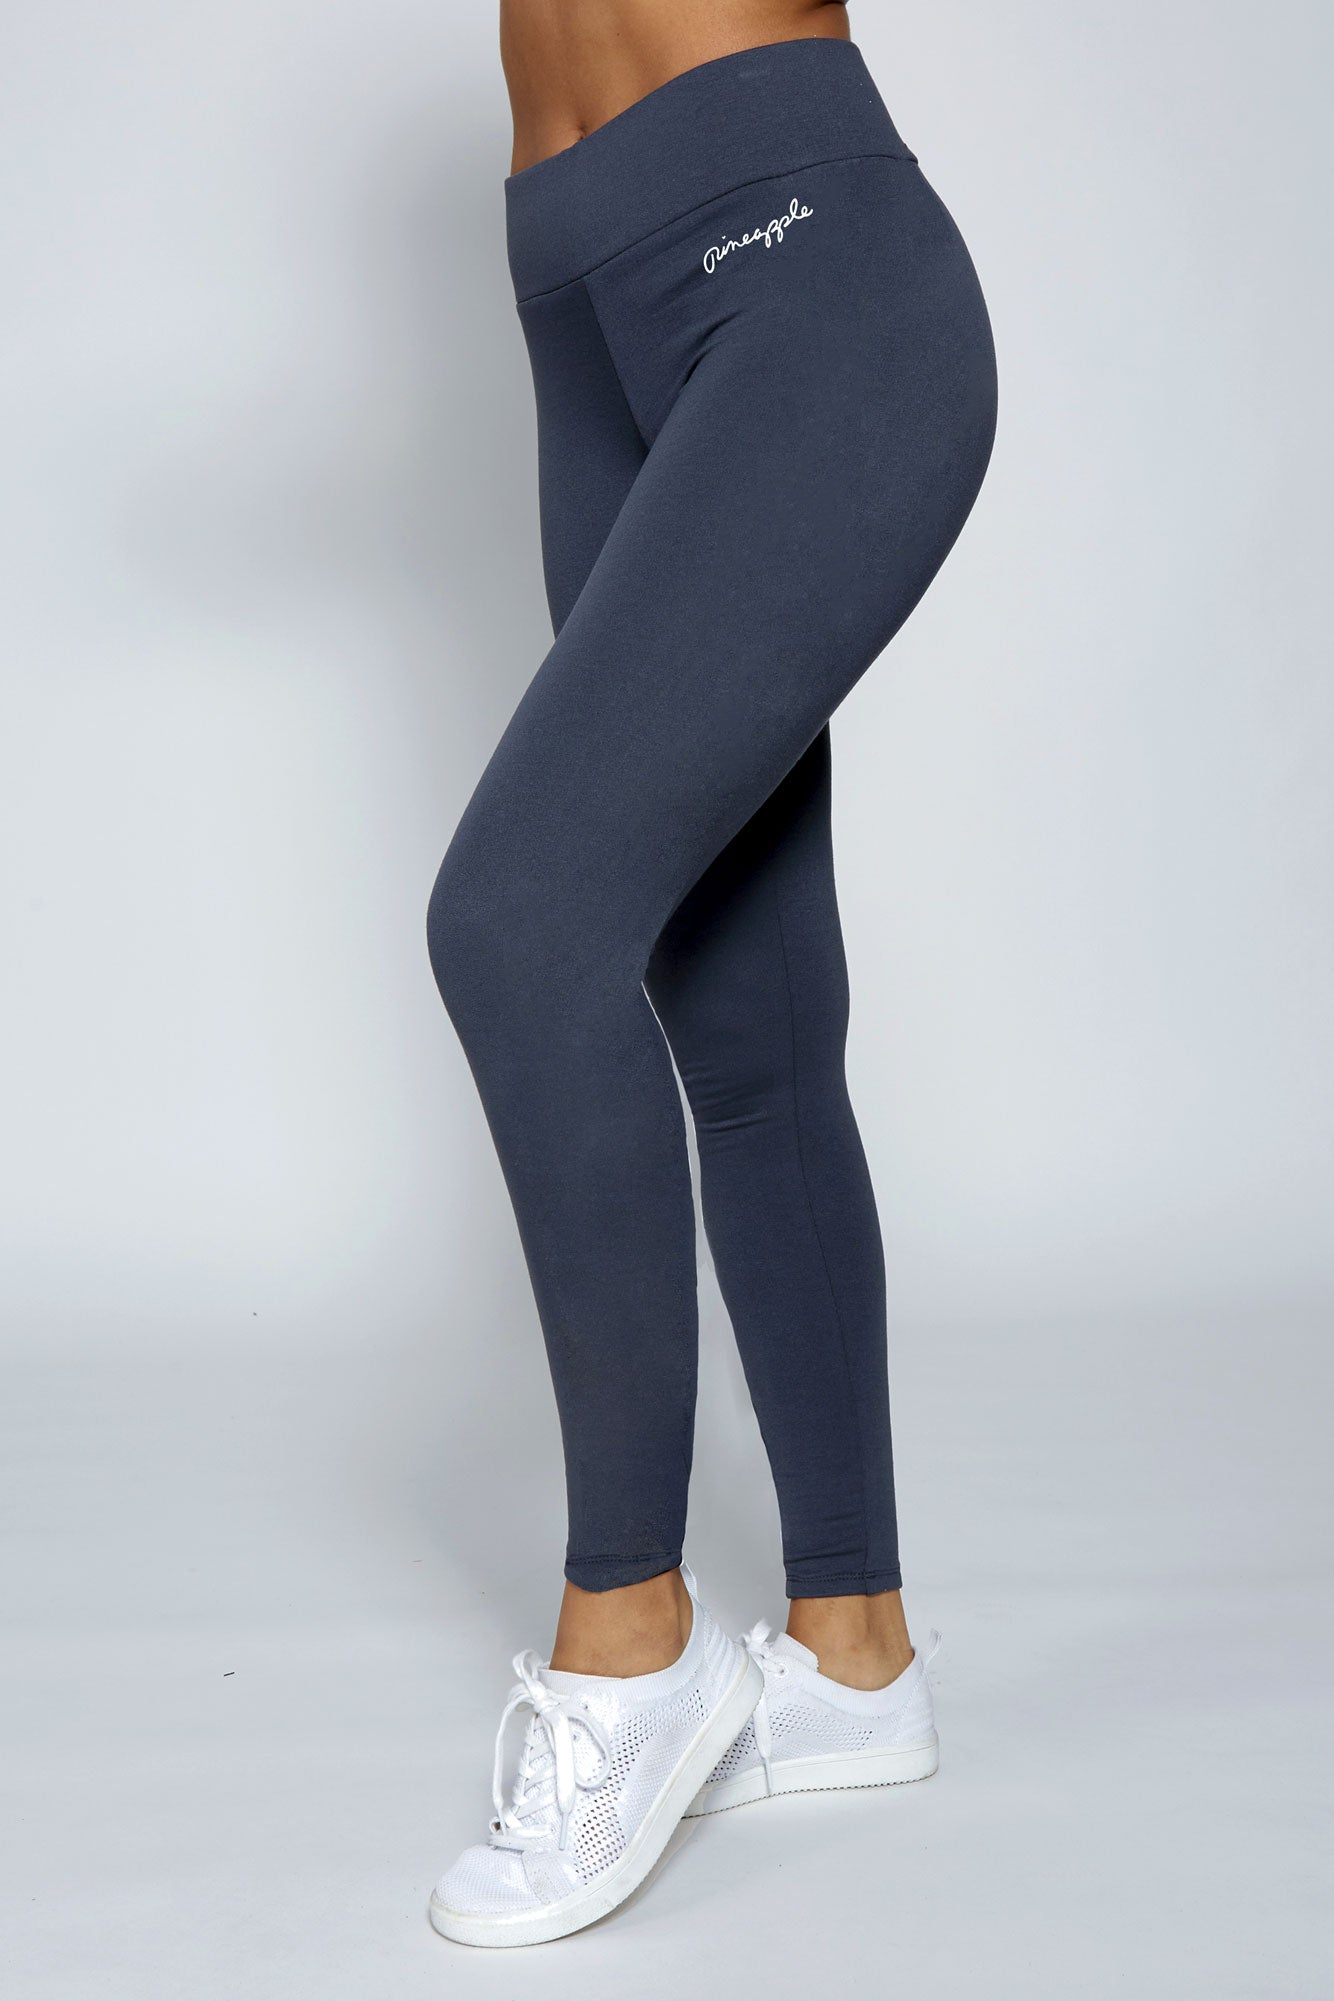 Pineapple Dance Women's Charcoal Wide Band Leggings  PT01900A6